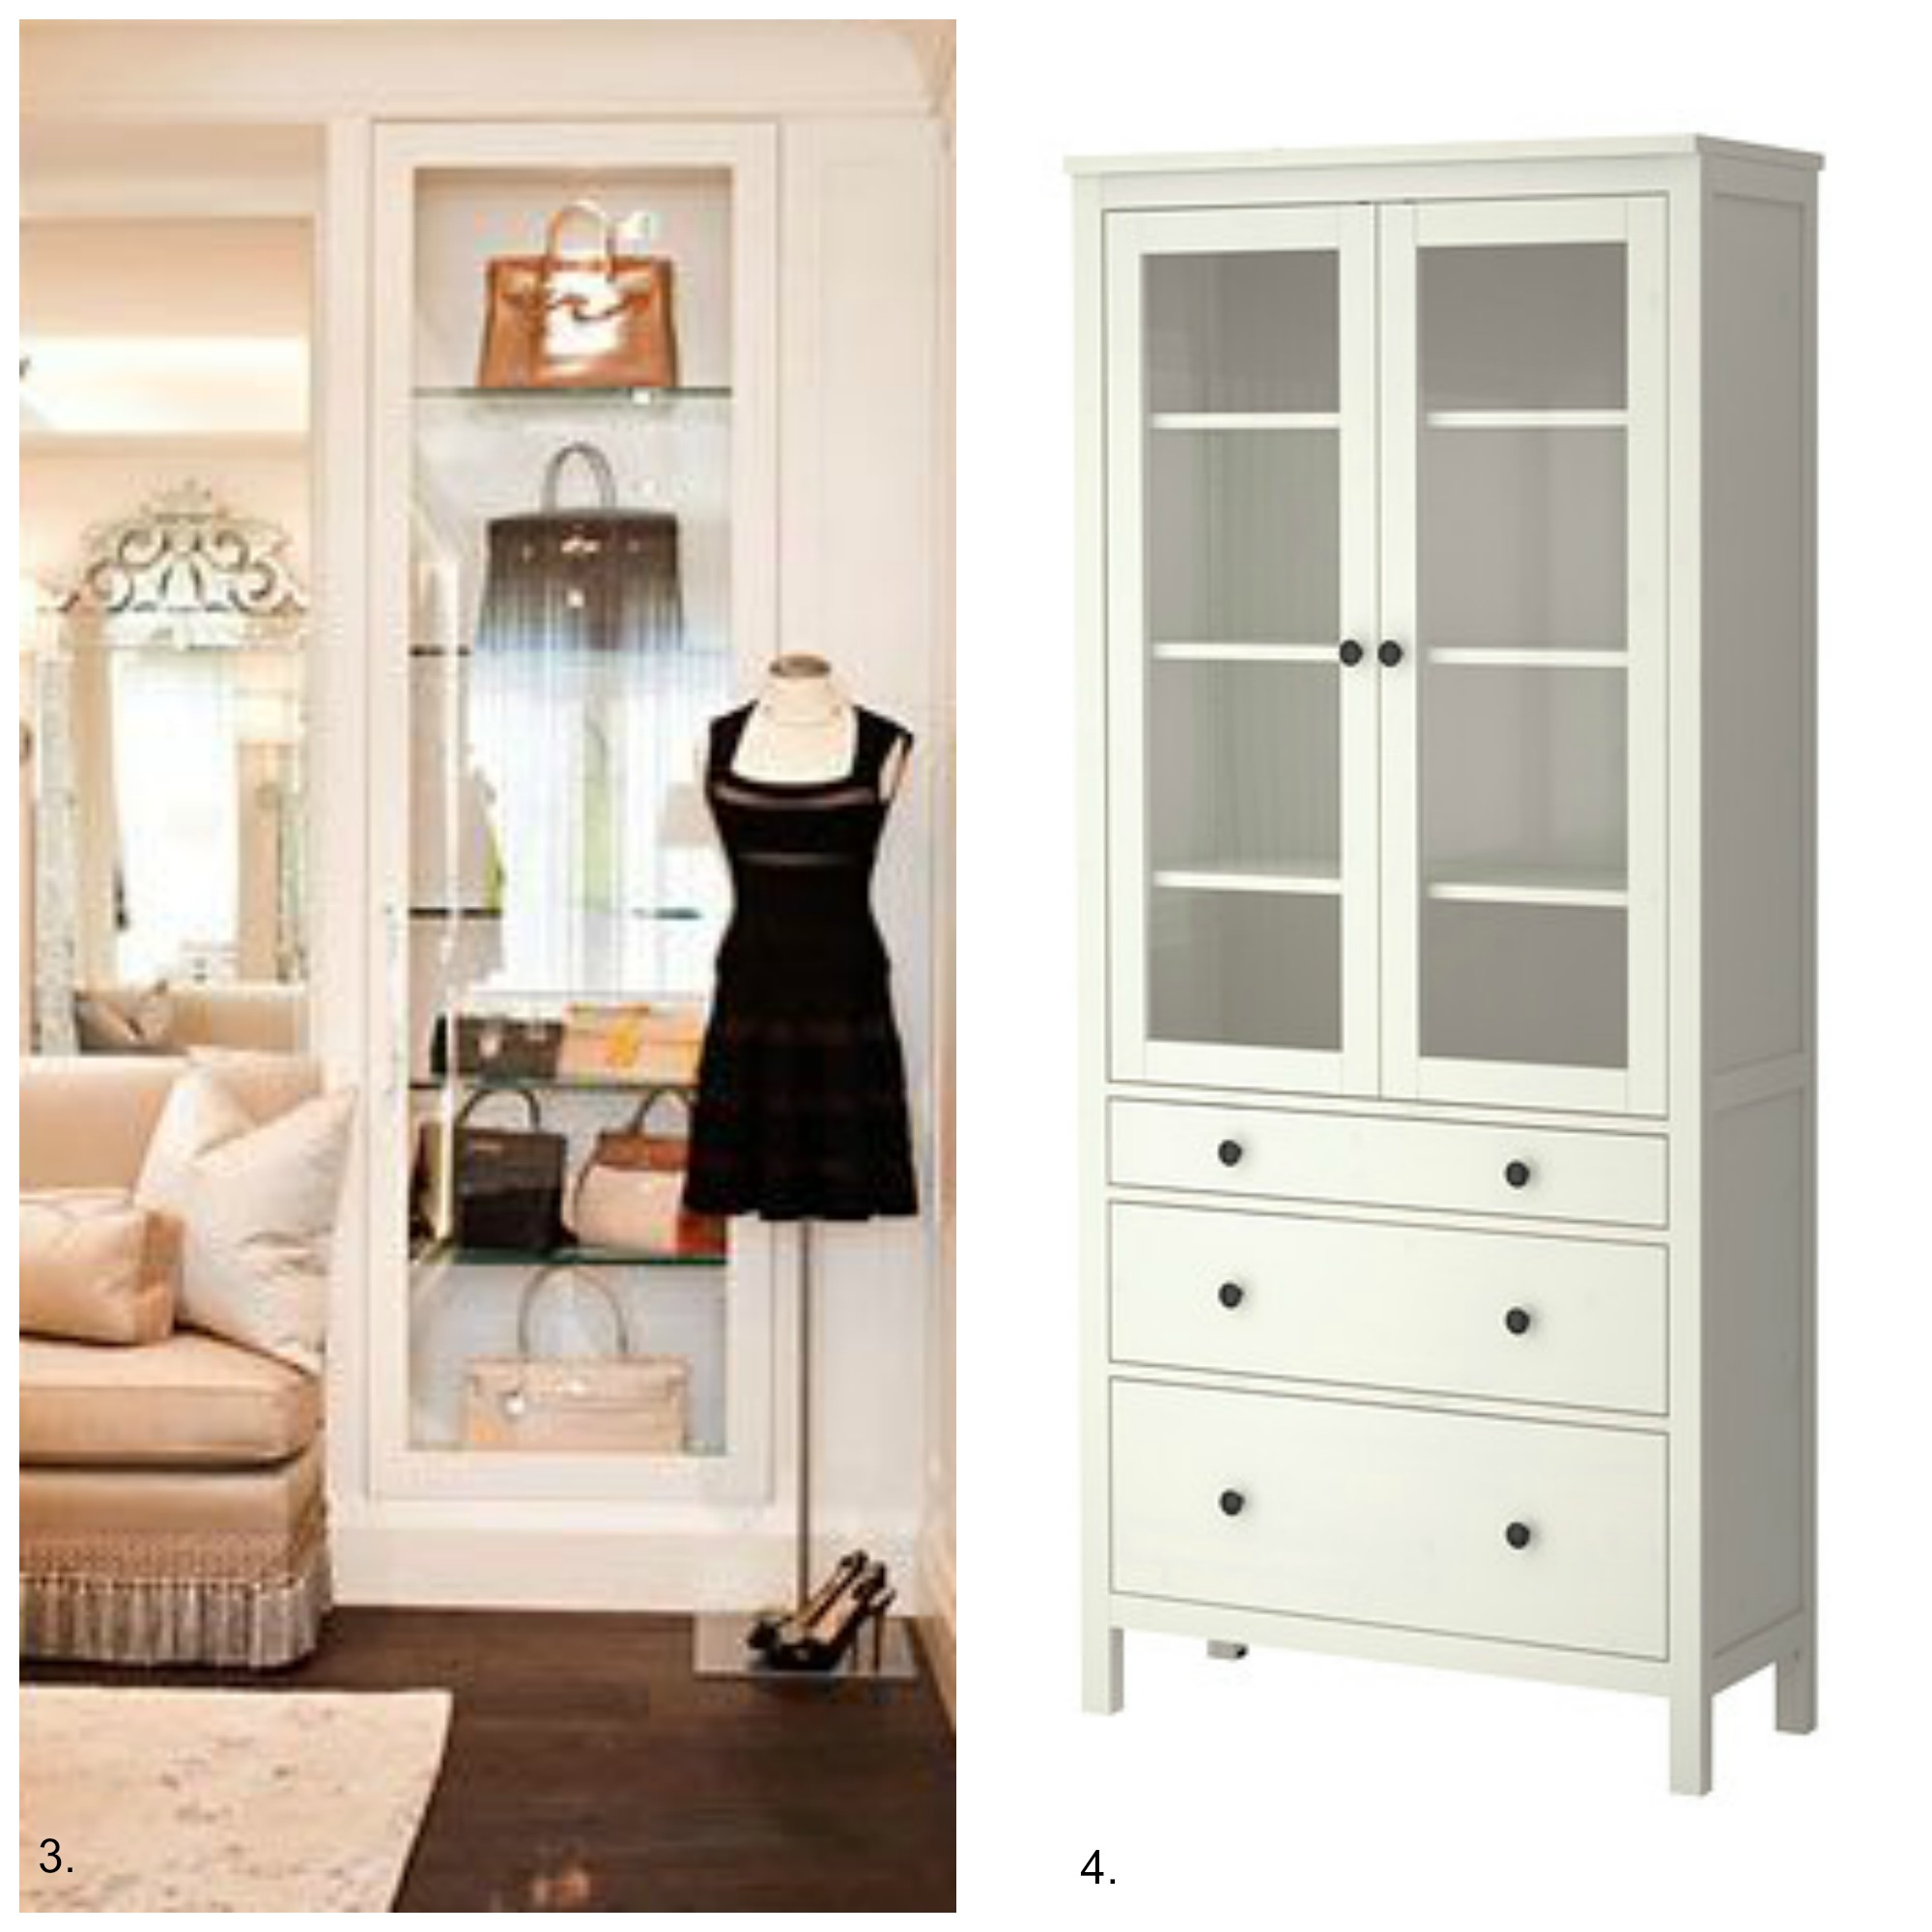 Wardrobe Space Can Be Scarce And We Tend To Fill Up Every Inch Here Are  Some Dressing Room Storage Ideas To Create Your Own Dressing Station.